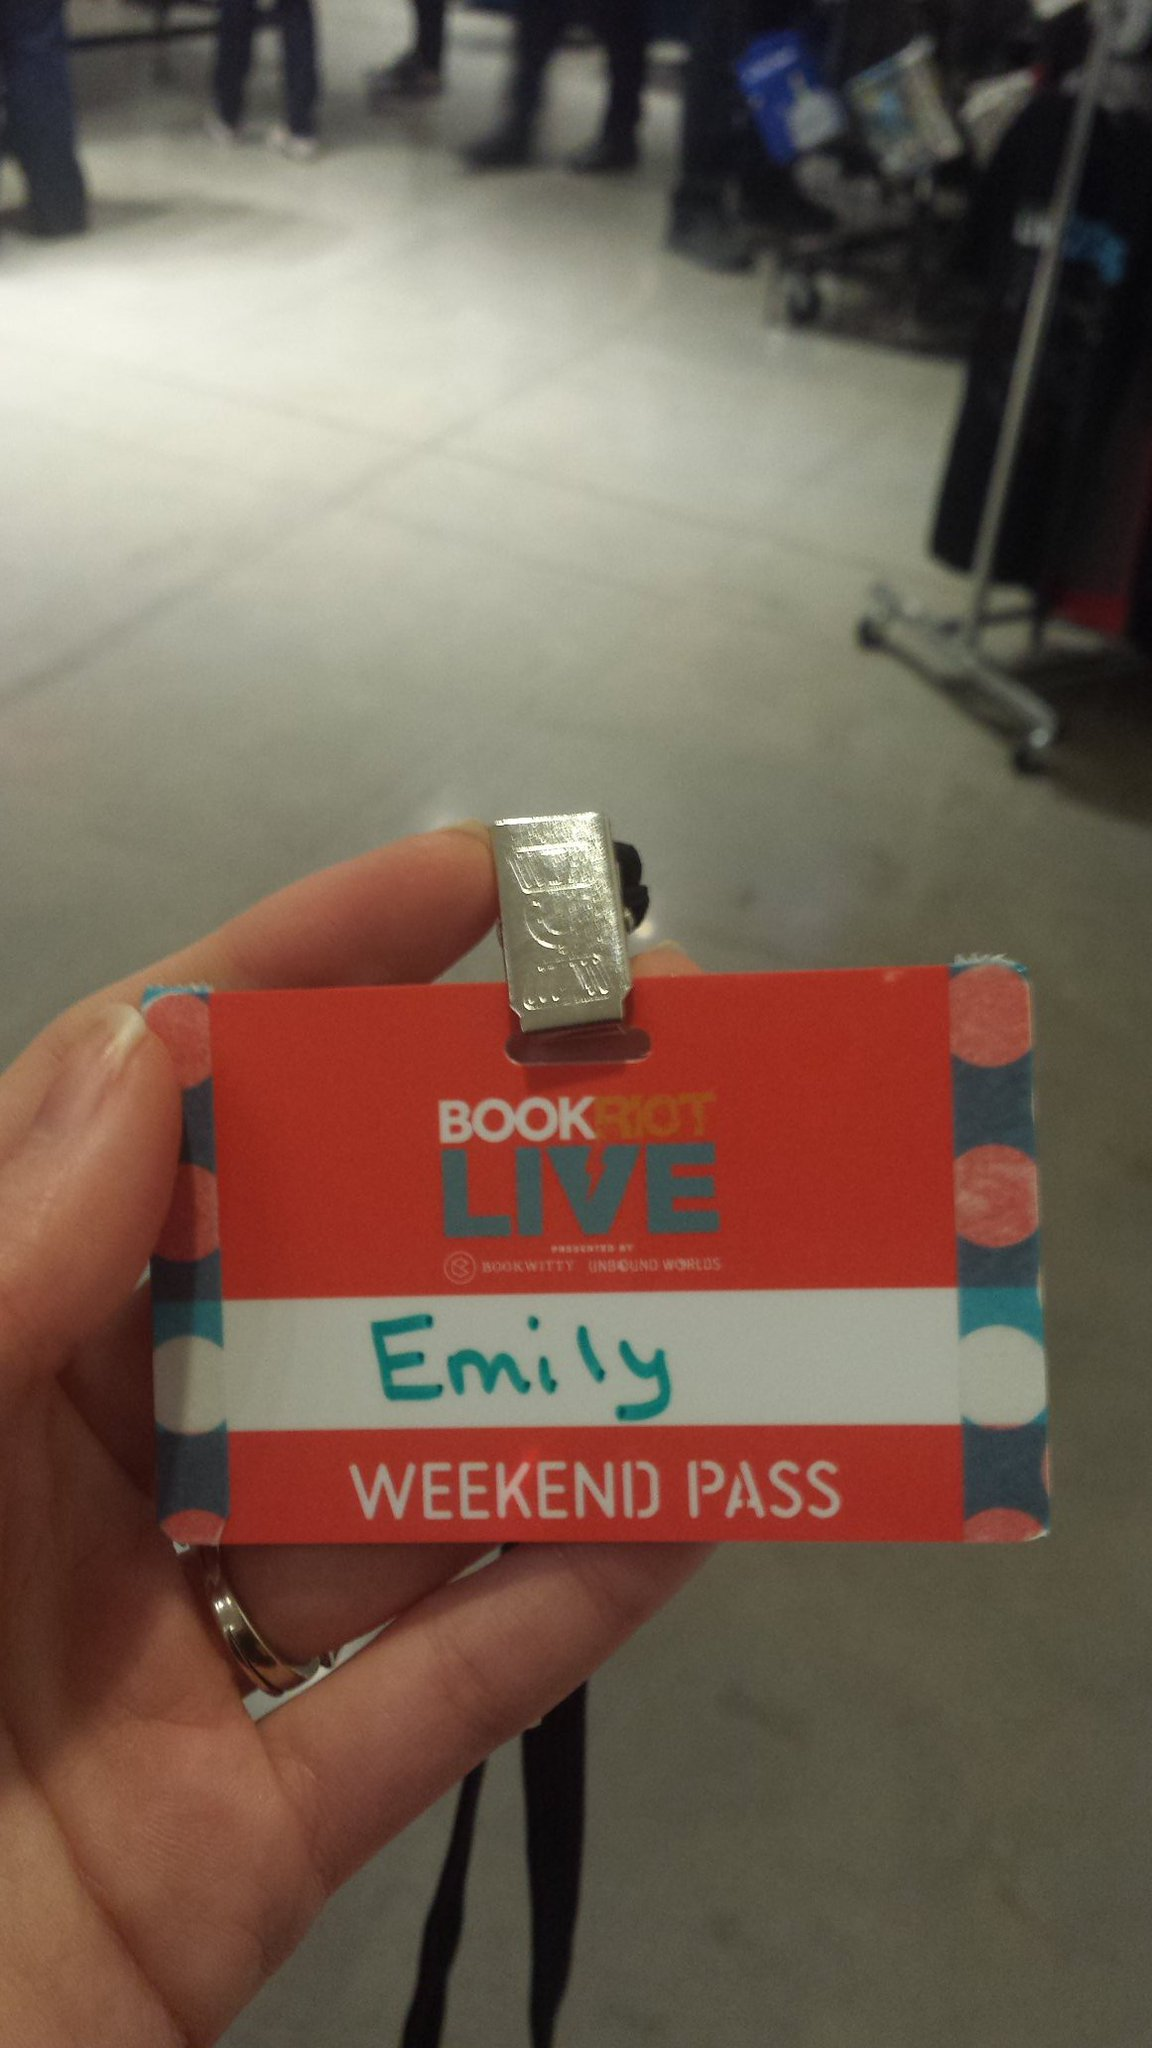 #BRLive has a washi tape station for name badges https://t.co/Dt5duWA9Vb